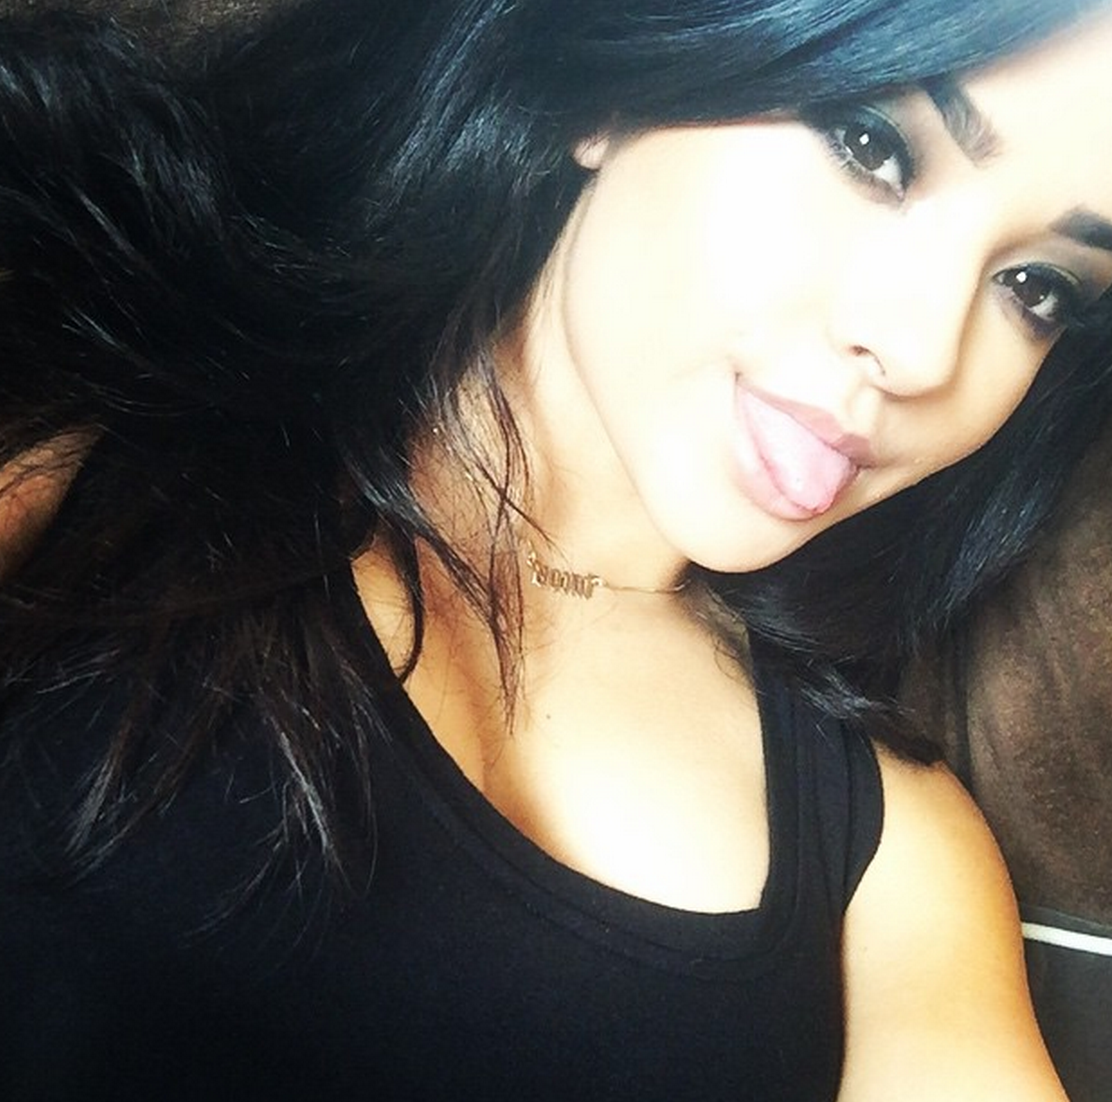 Becky g driving test Instagram by m magazinecom 1112x1102